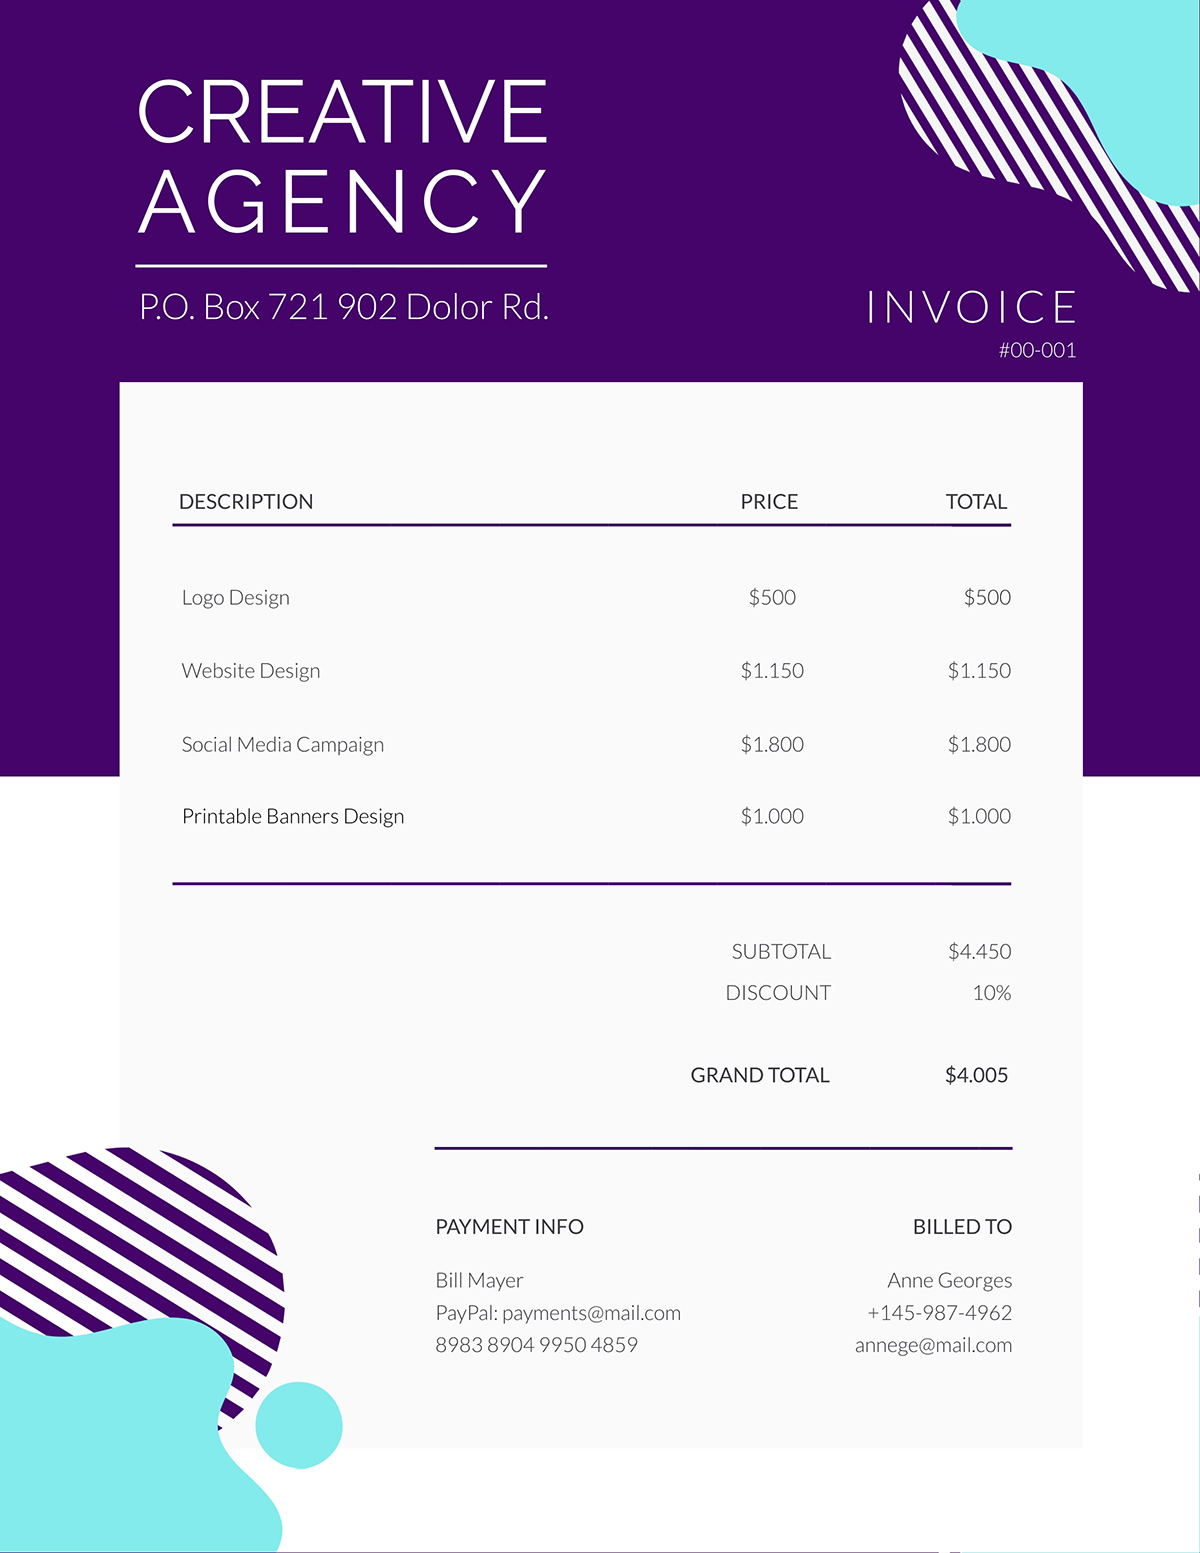 A creative agency invoice template available in Visme.